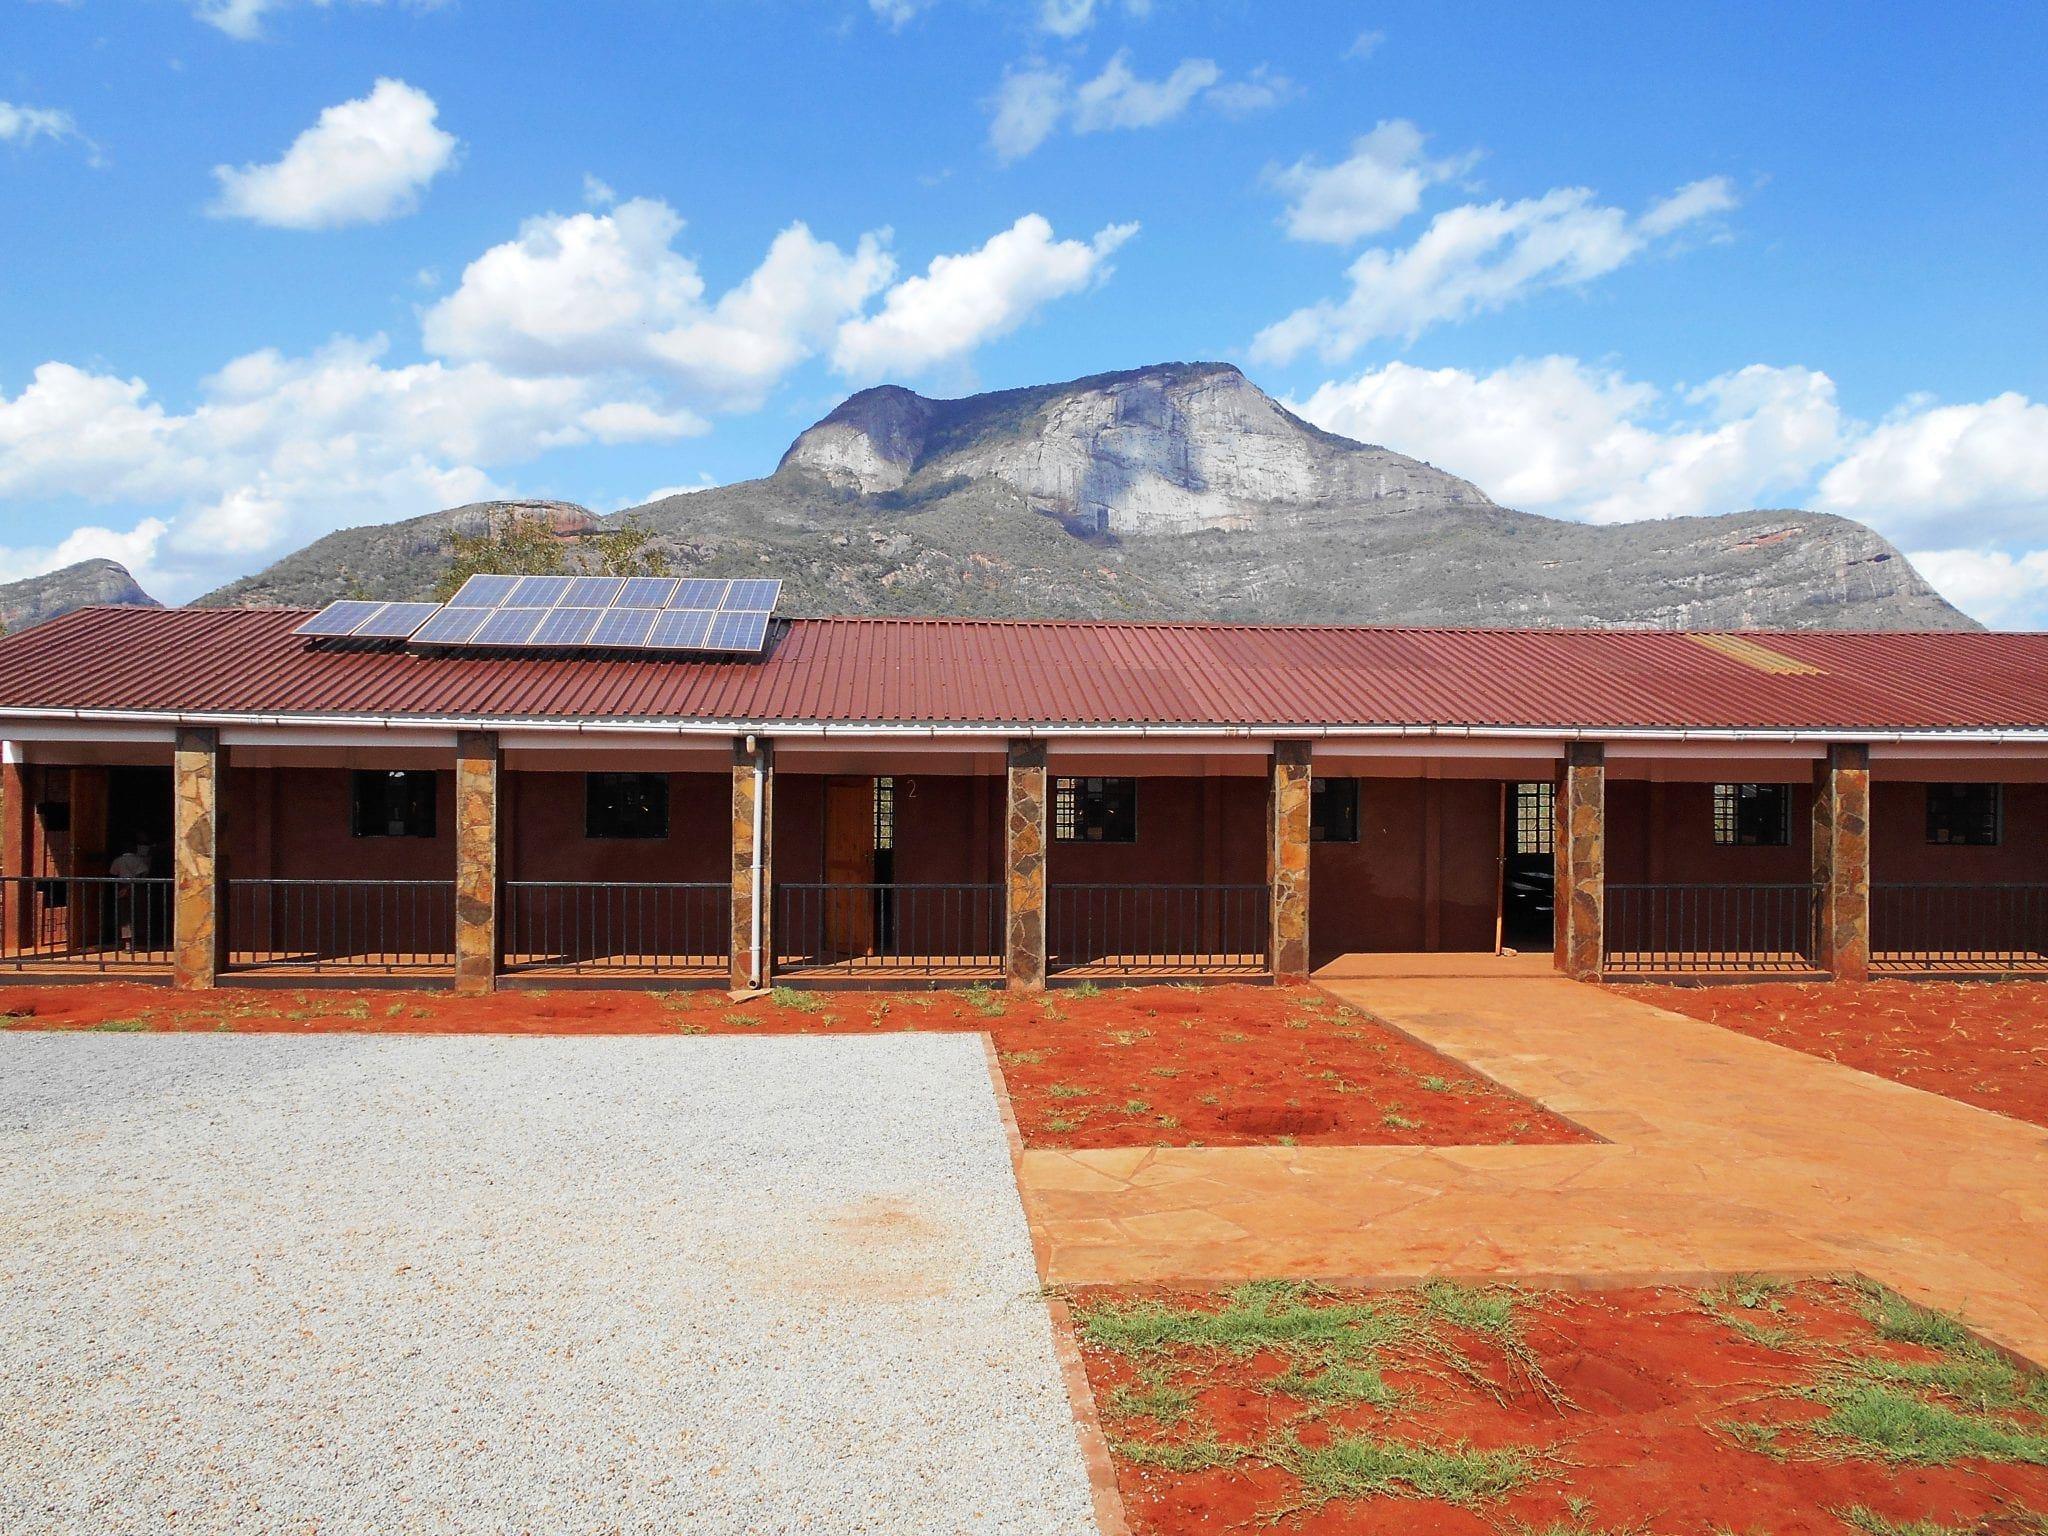 Classrooms with mountain backdrop (13.03.2017)